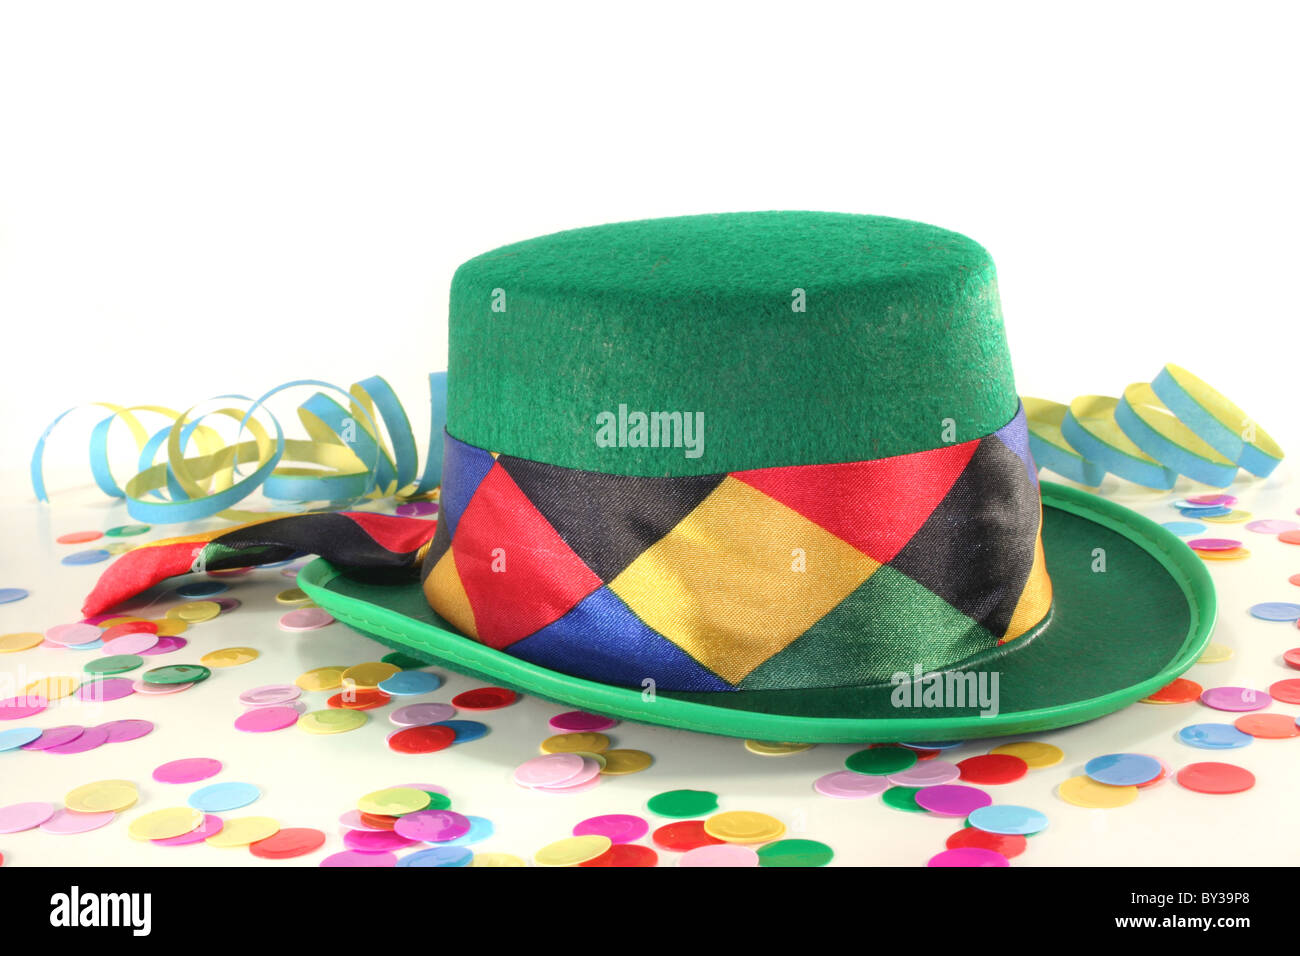 Carnival hat with colorful confetti and streamers on white background - Stock Image